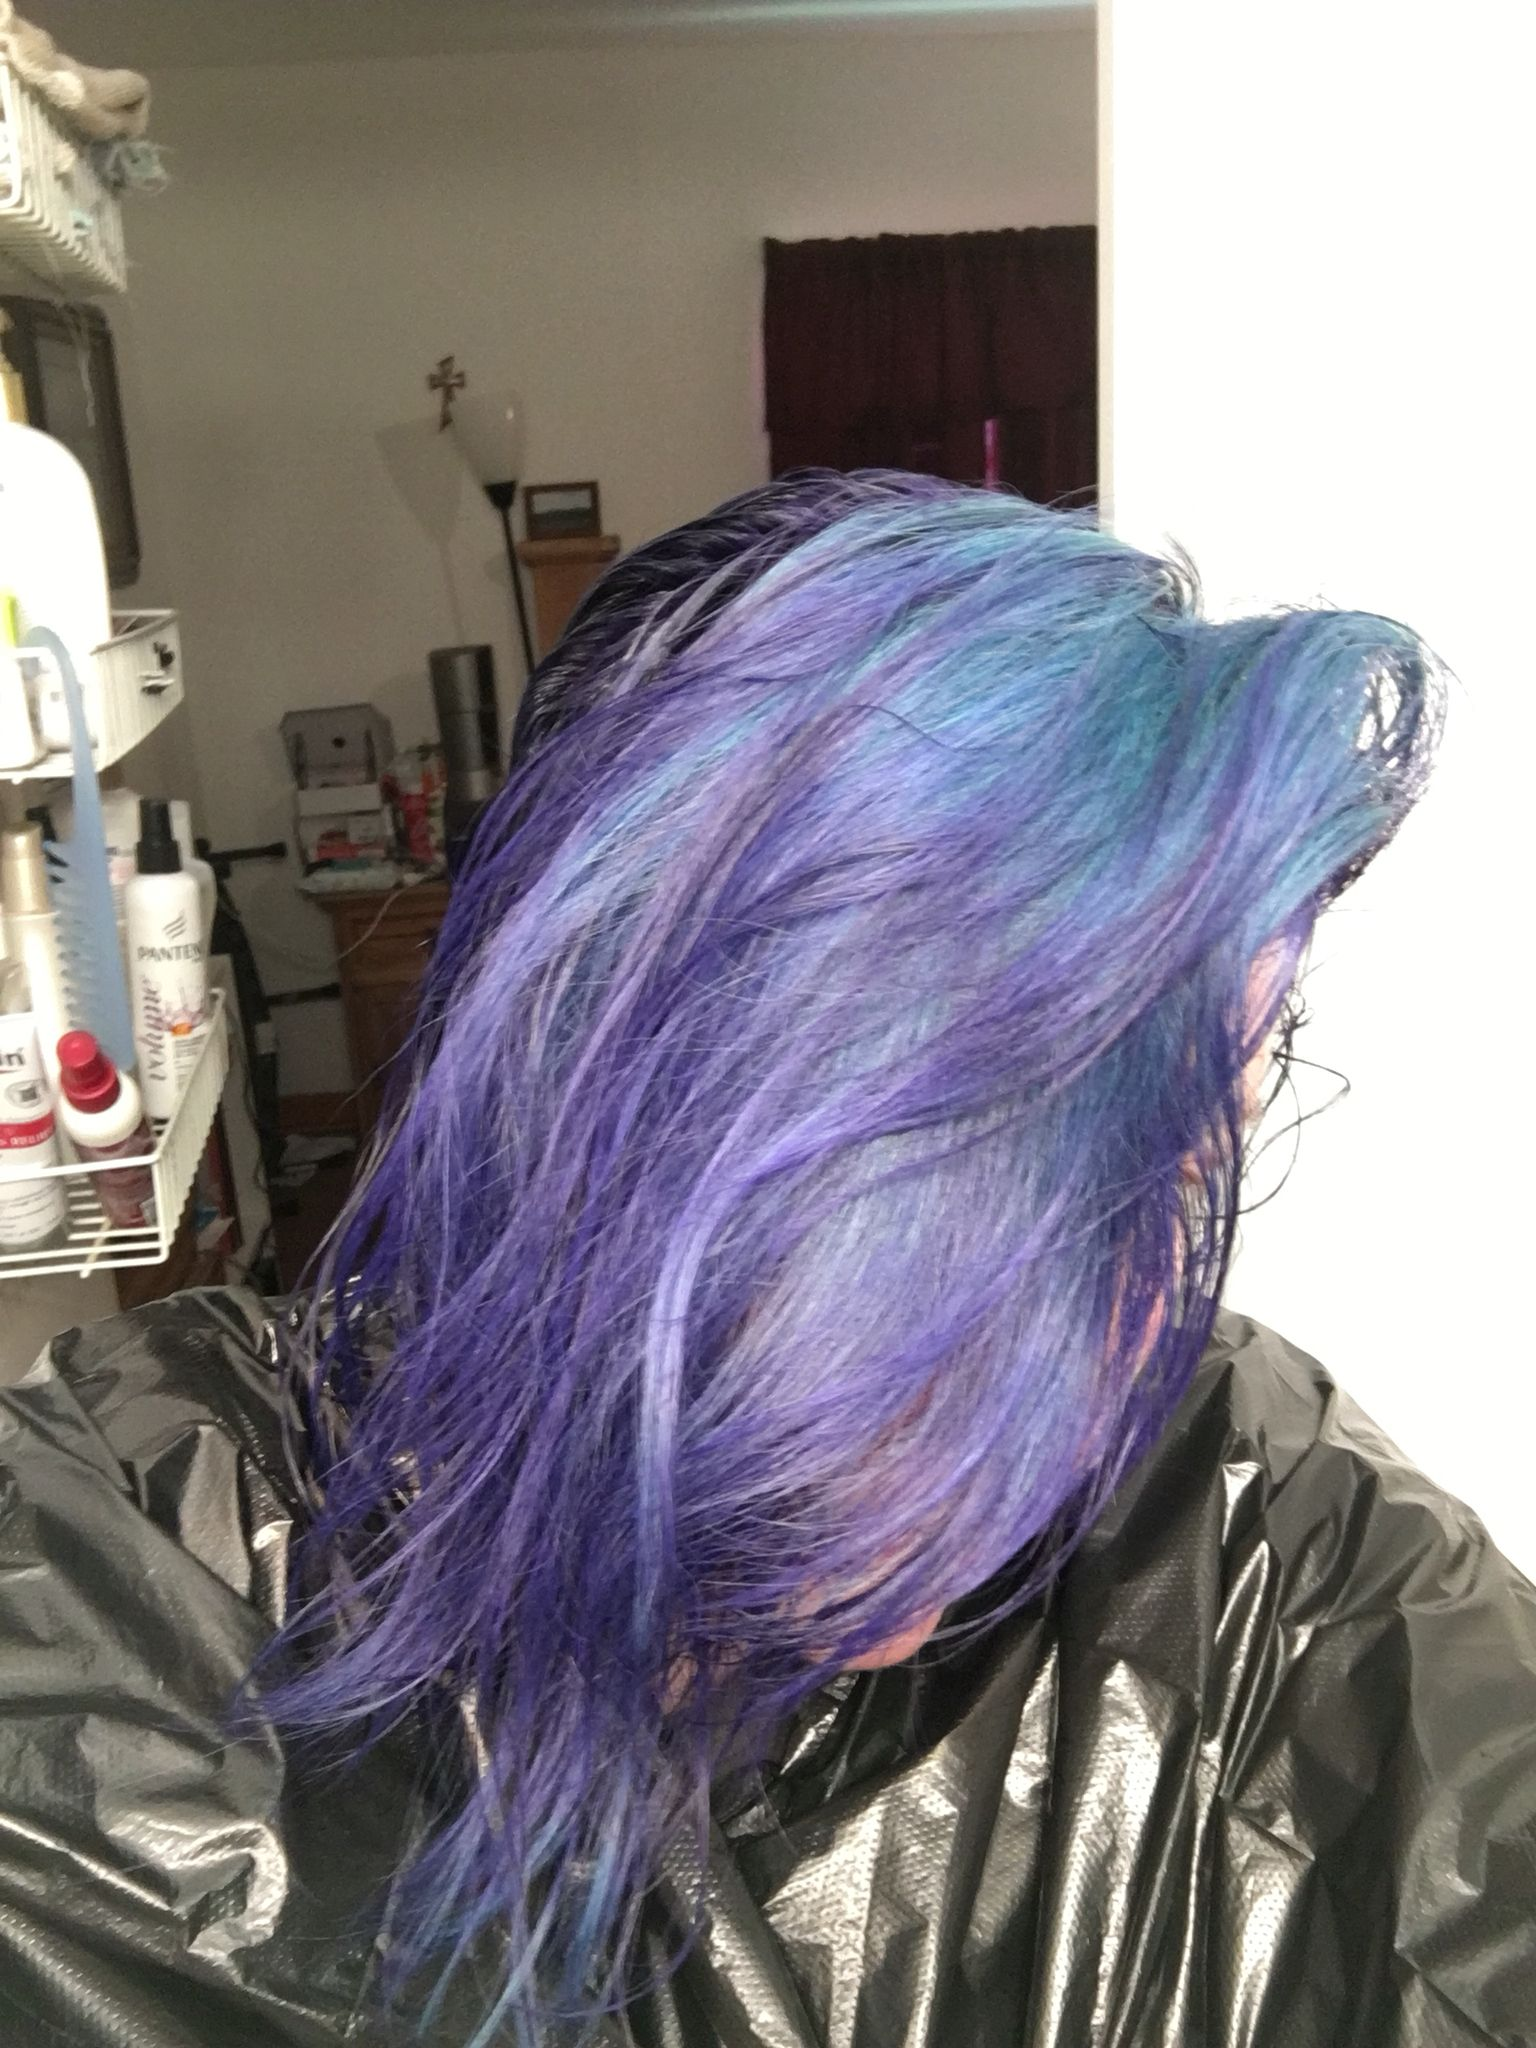 This Is Splat Purple Desire Over Faded Splat Deep Emerald I Put It On My Gloves And Ran My Fingers Thru My Hair Hair Long Hair Styles My Hair